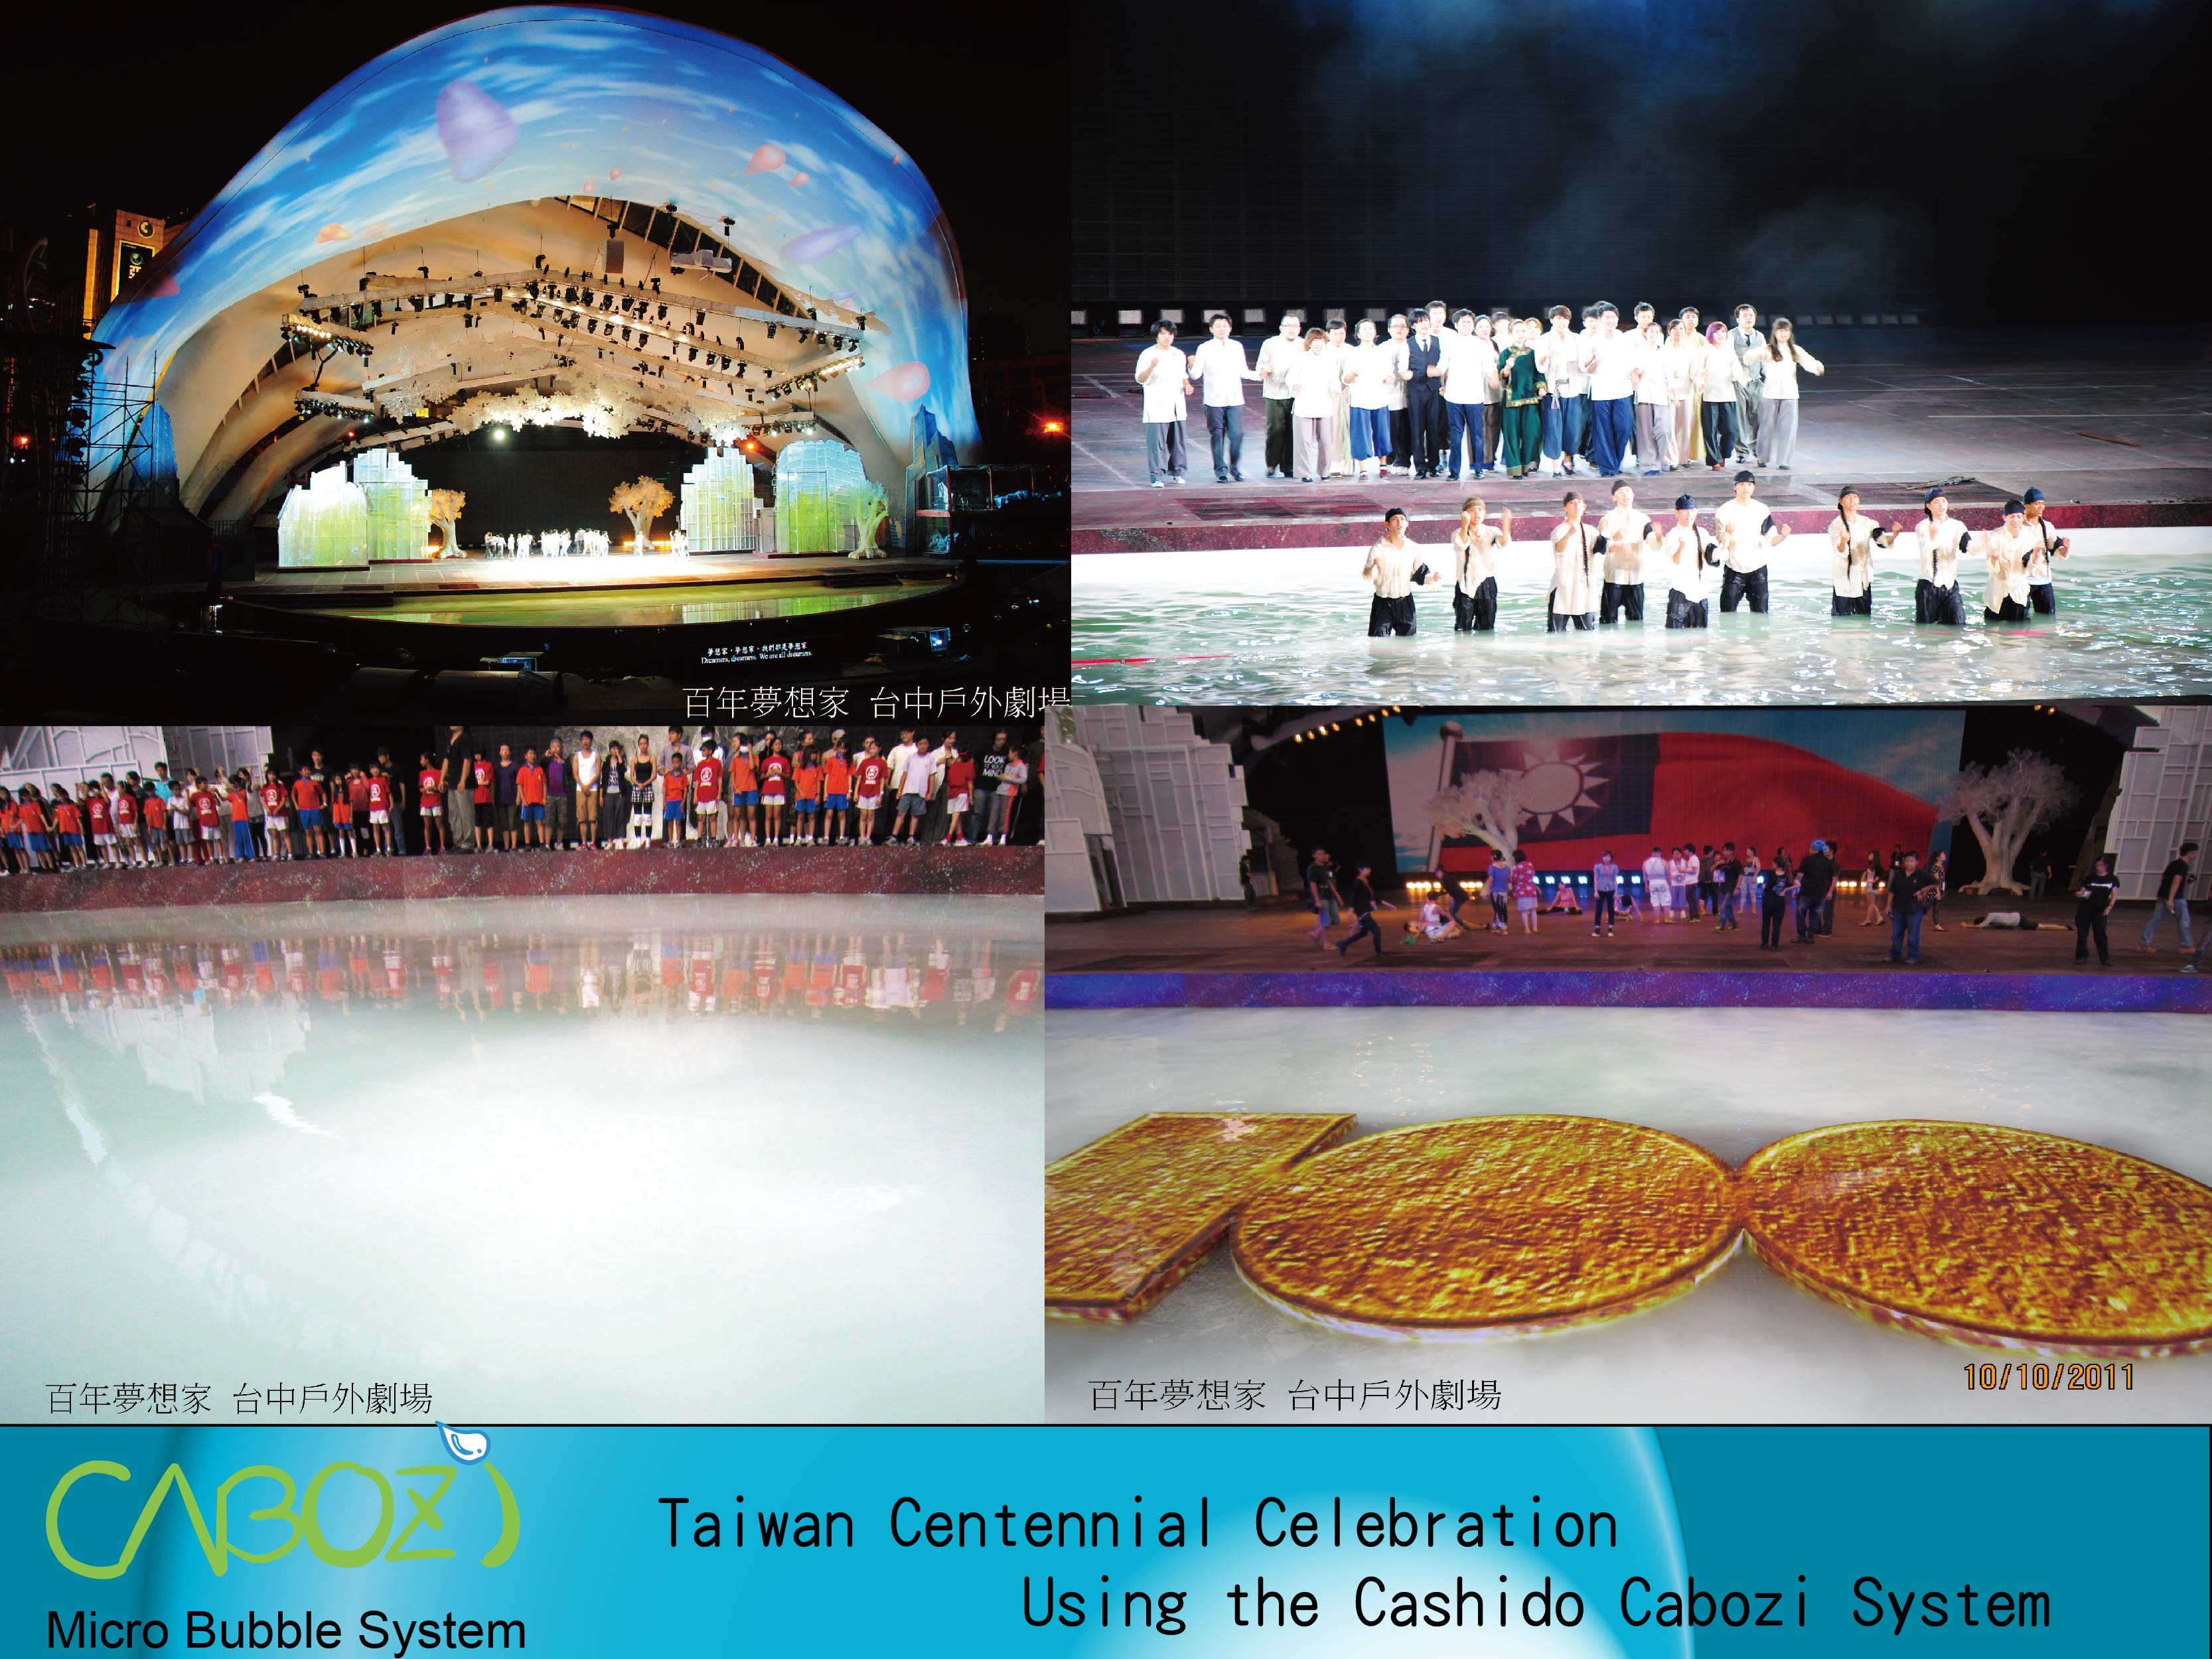 Taiwan Centennial Celebration-deu